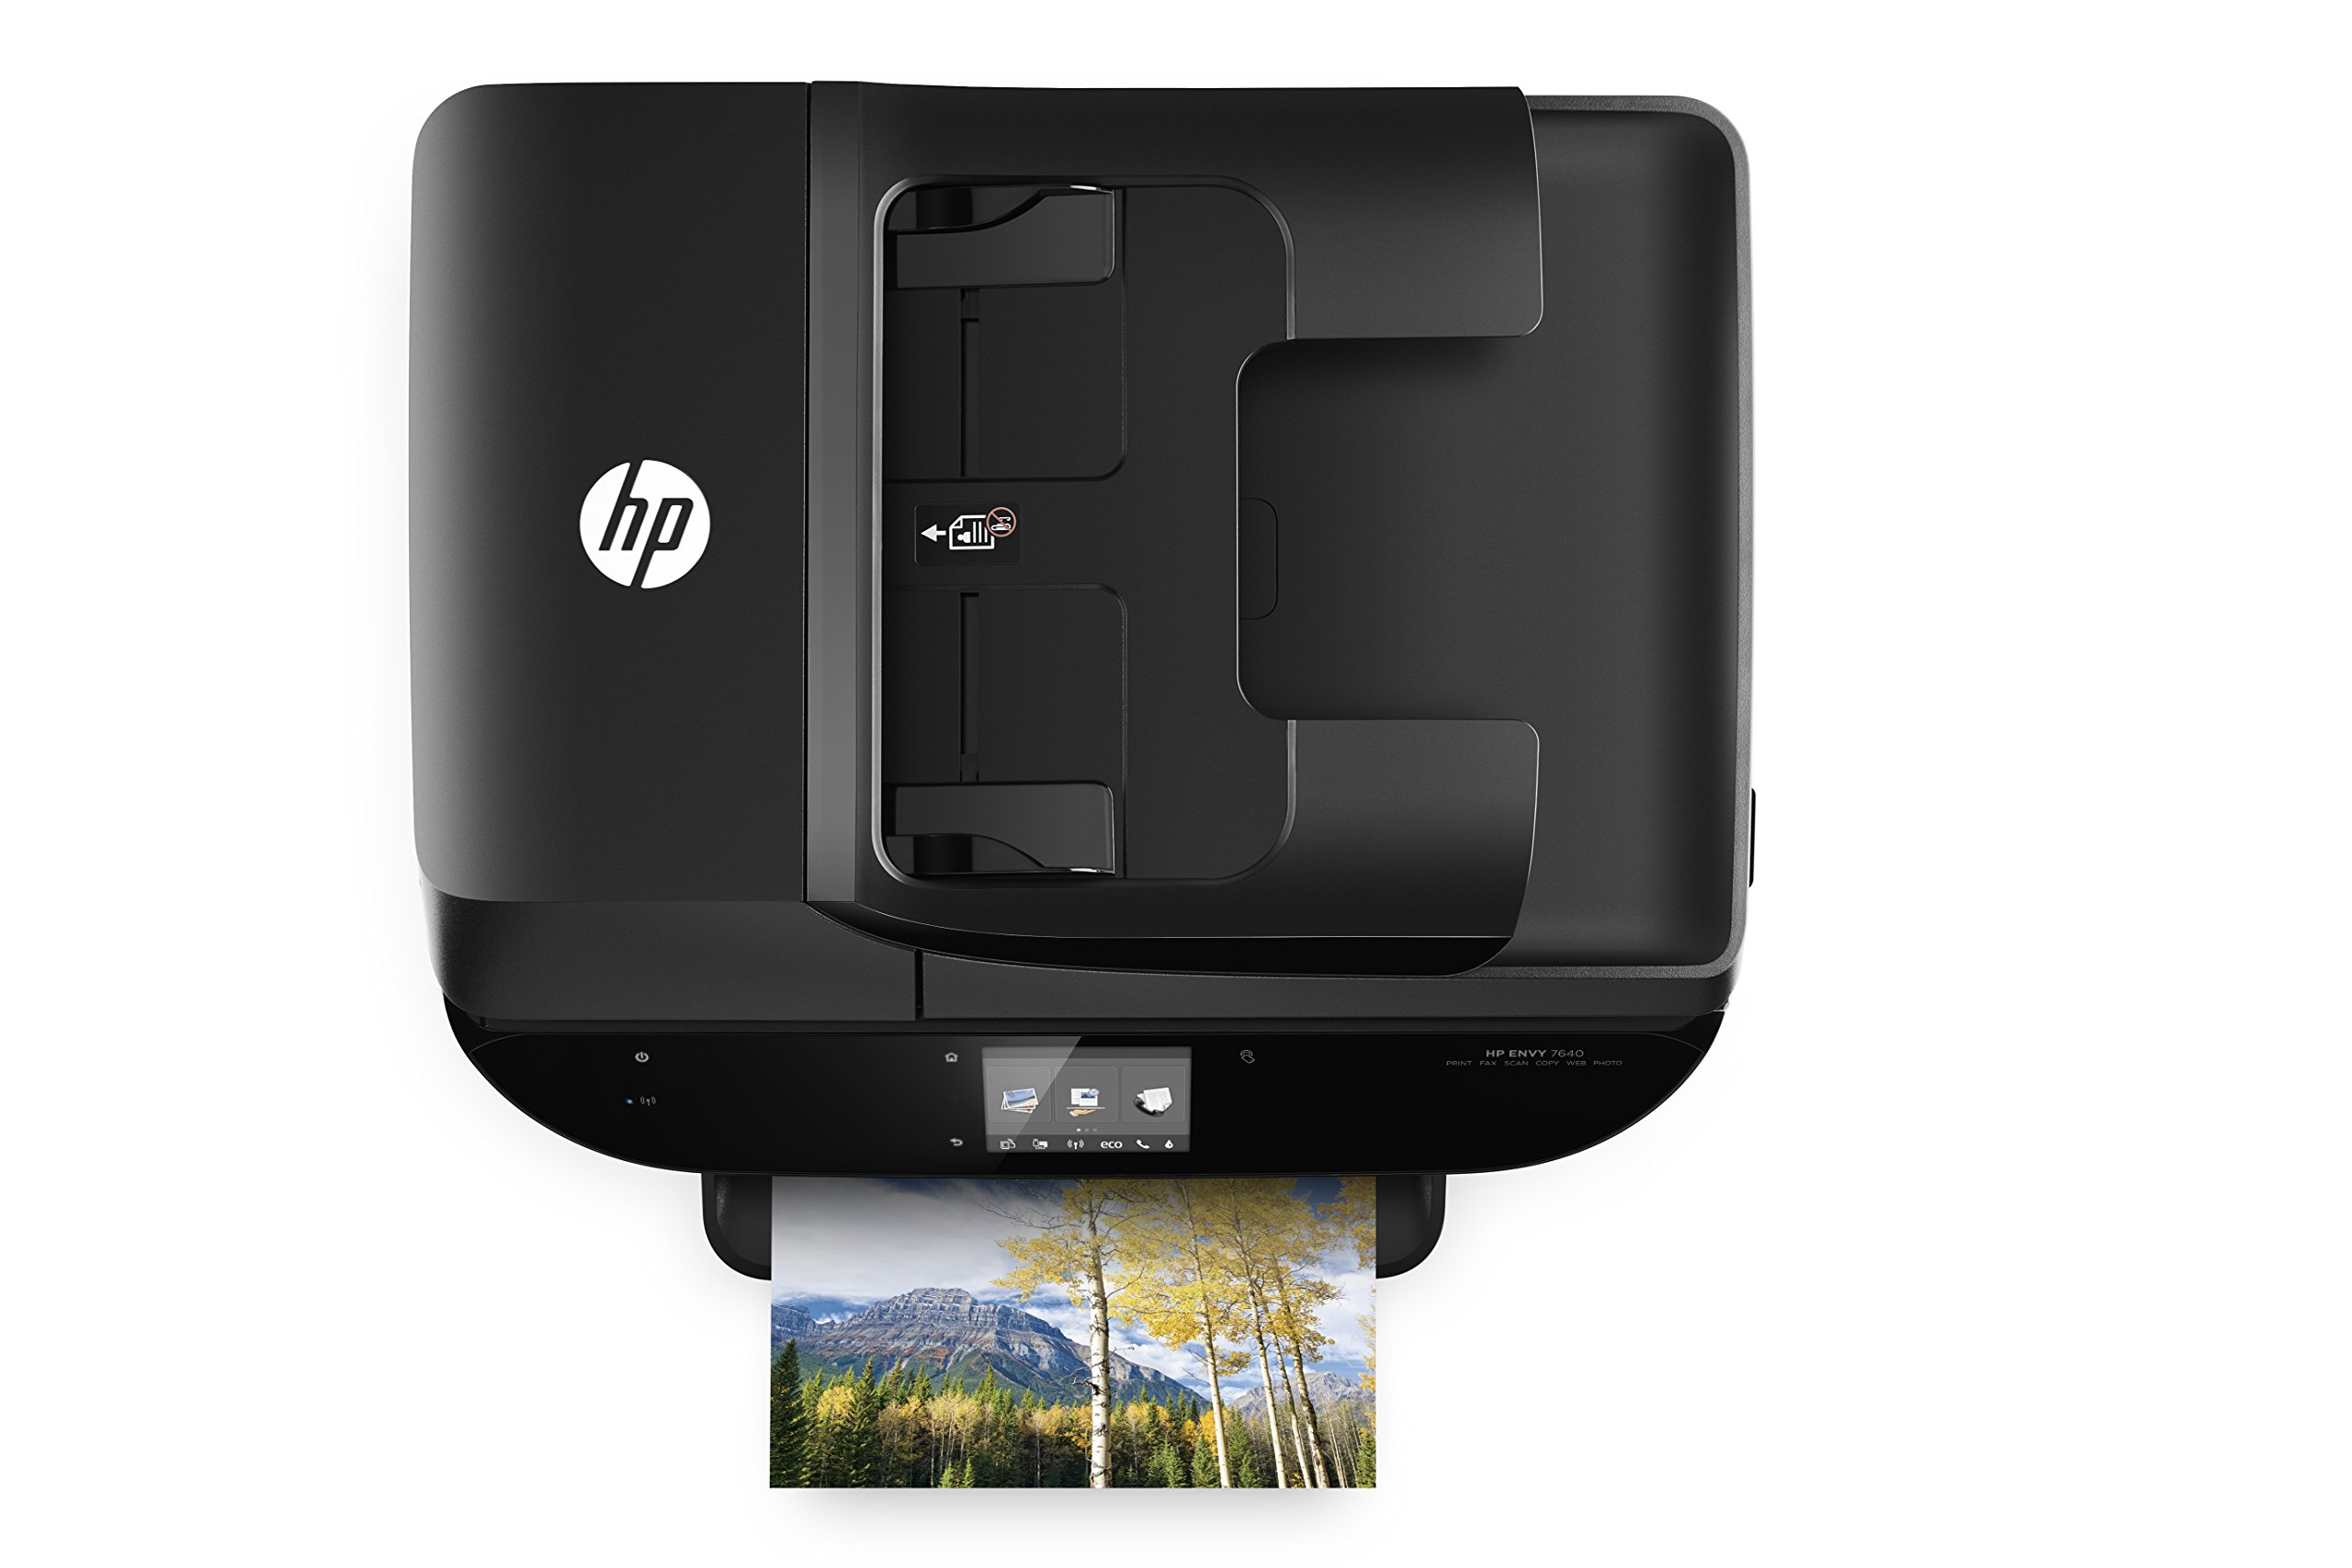 HP Envy 7640 Wireless All-in-One Photo Printer with Mobile Printing, Instant Ink ready (E4W43A) by HP (Image #5)